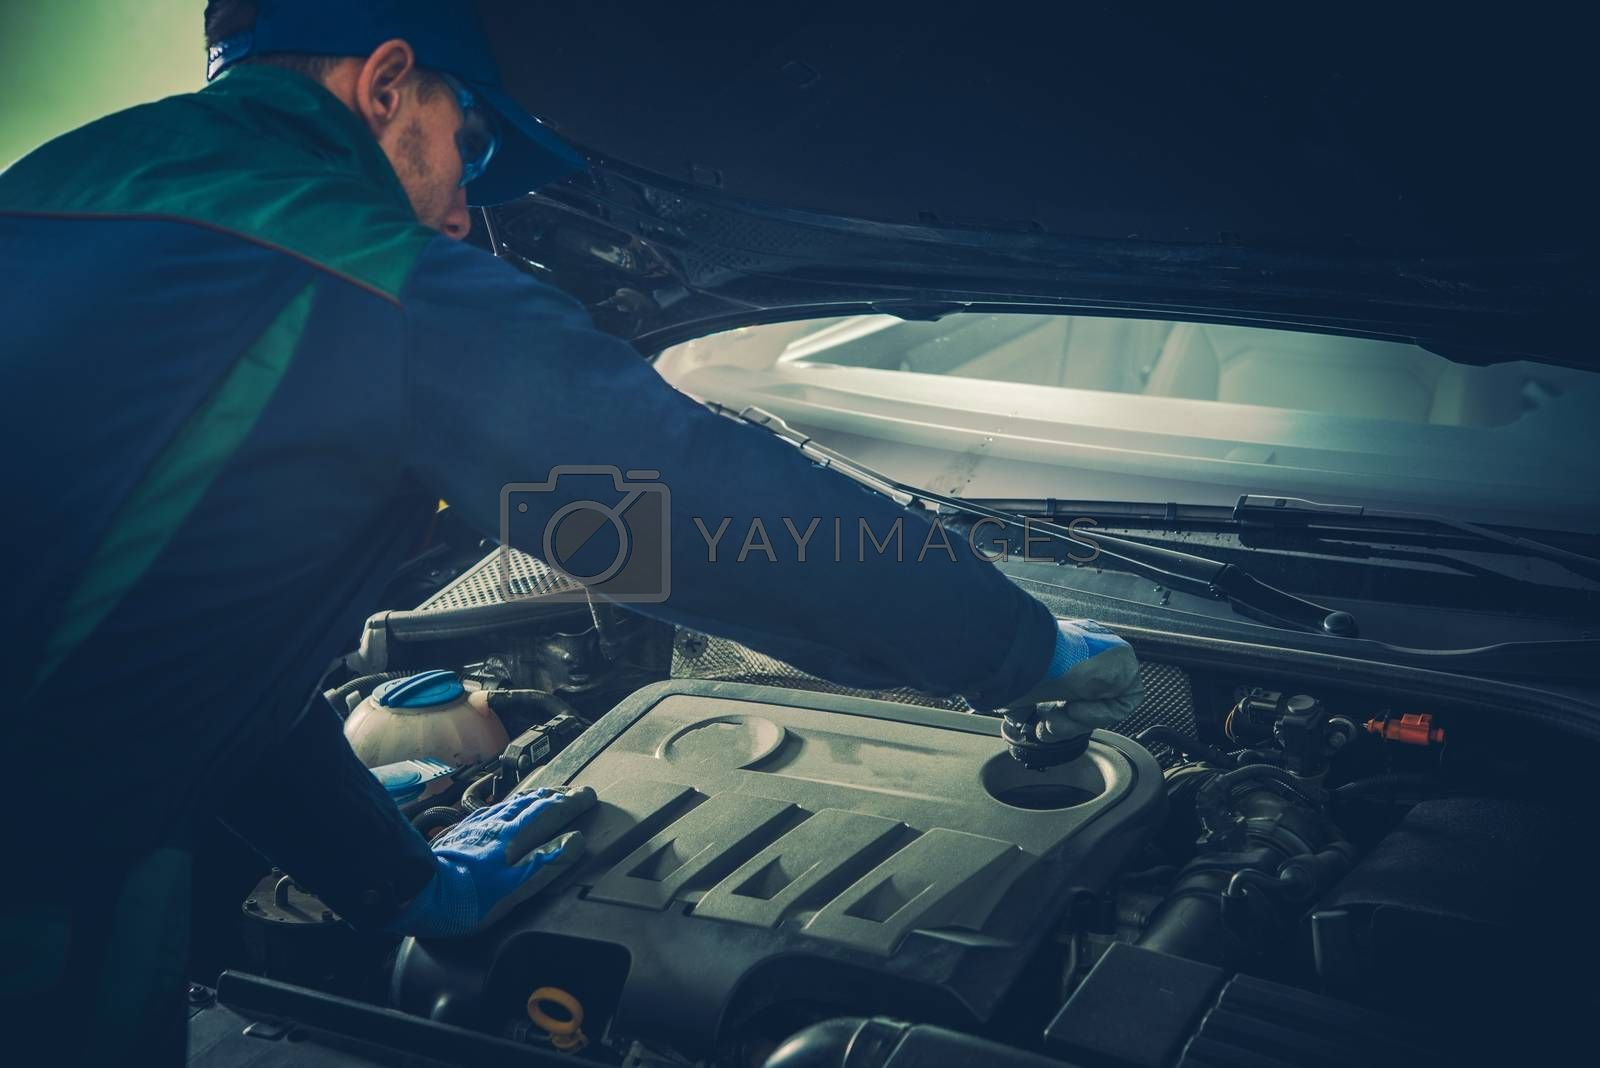 Vehicle Fluids Maintenance by Professional Car Mechanic. Caucasian Service Technician in His 30s.